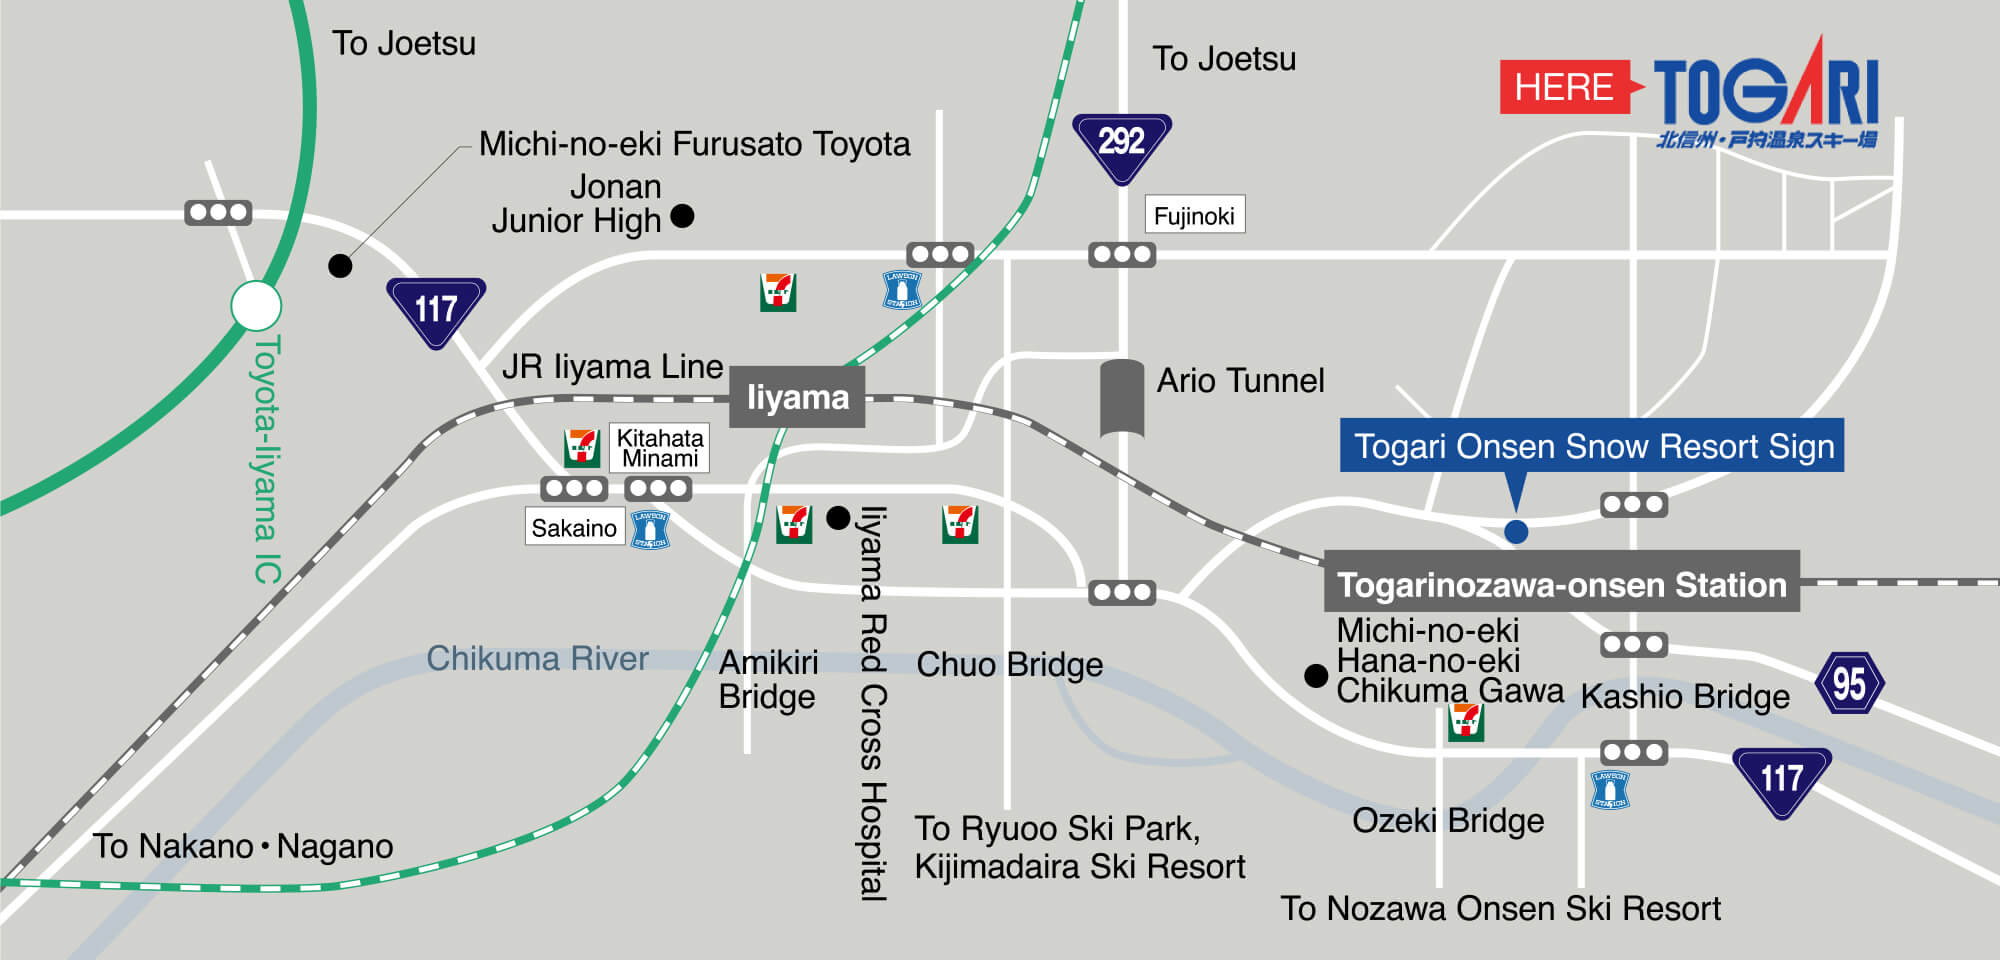 Togari Onsen Snow Resort and Japan access